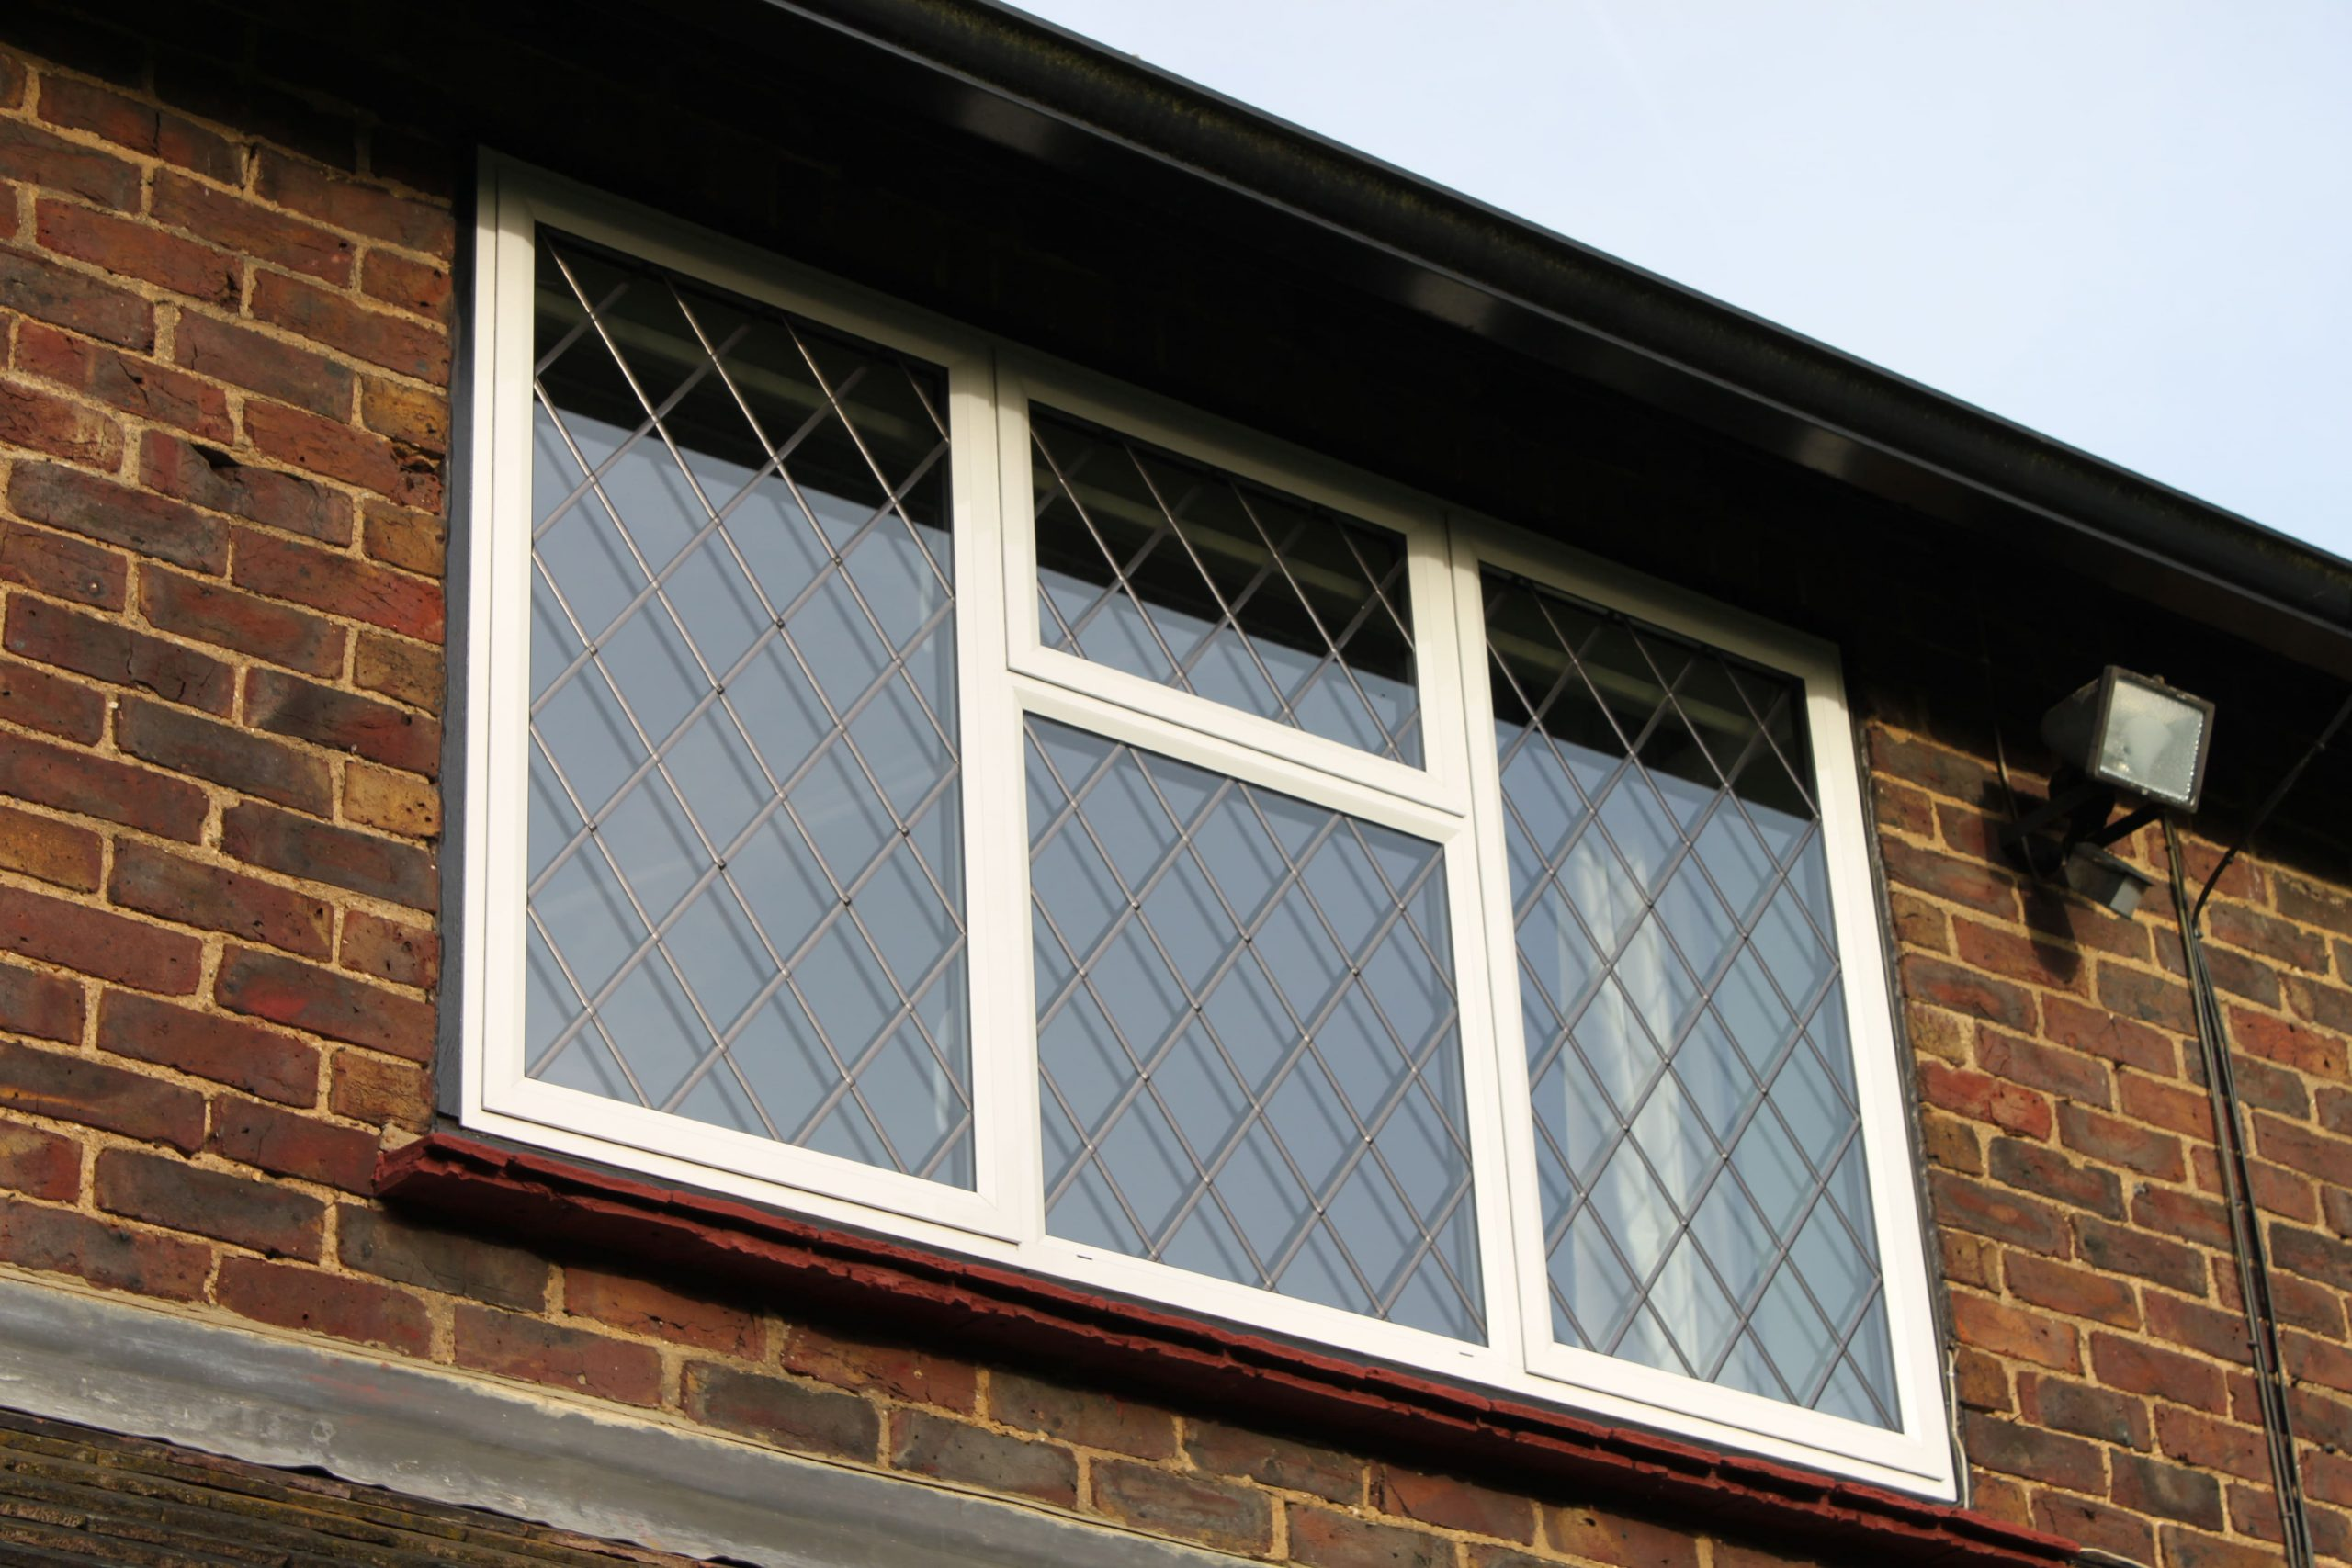 White aluminium secondary glazed window with leads